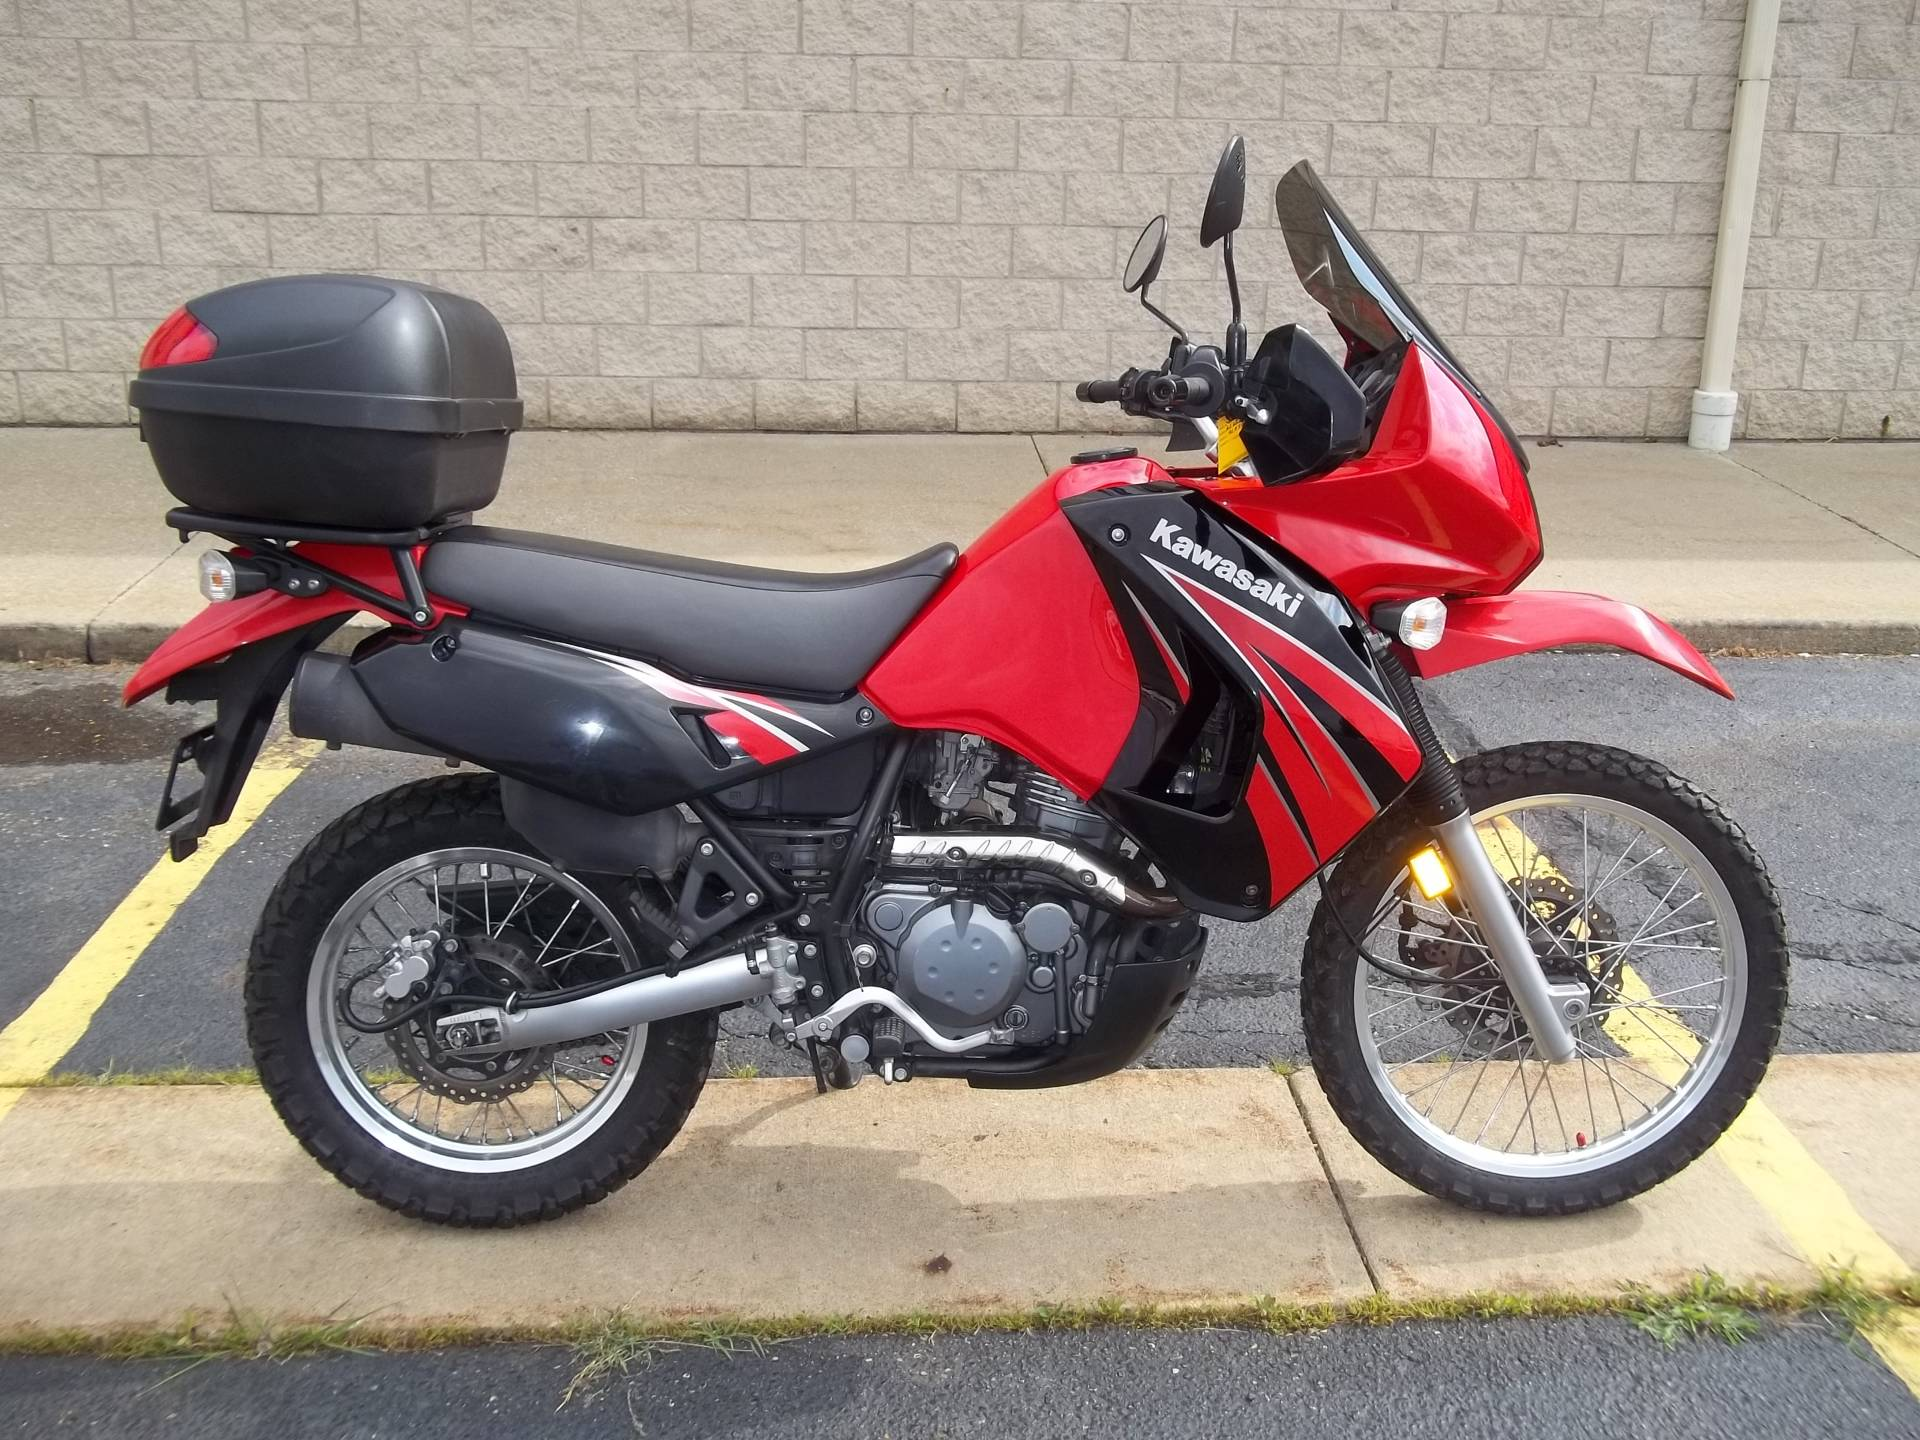 Used 2009 Kawasaki KLR™650 Motorcycles in Canton, OH | Stock Number ...